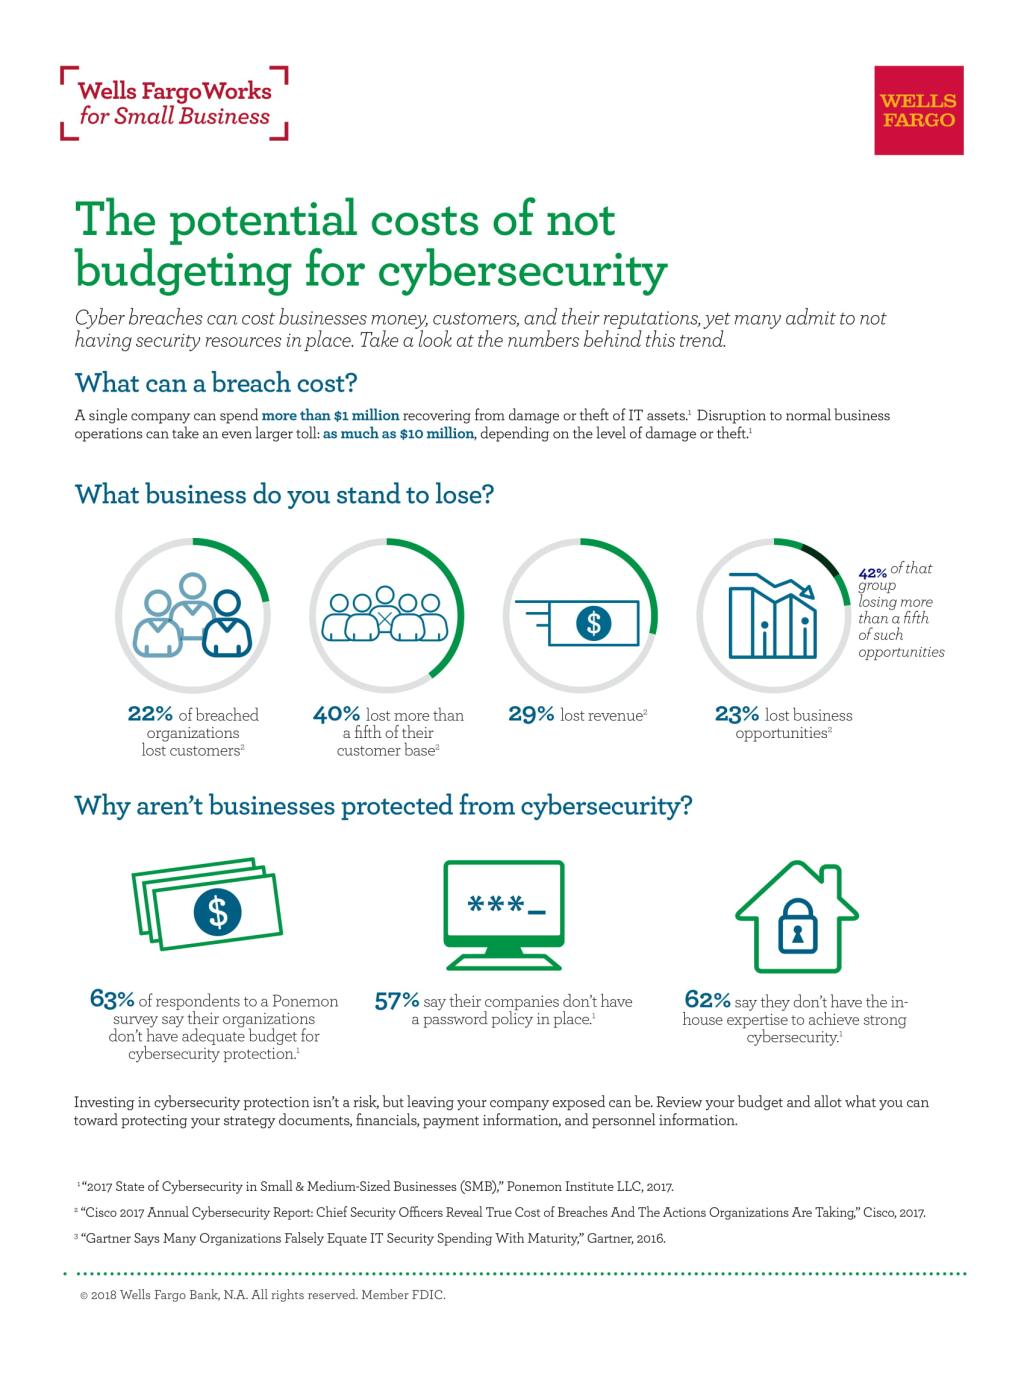 Costs Of Not Budgeting For Cybersecurity Wells Fargo